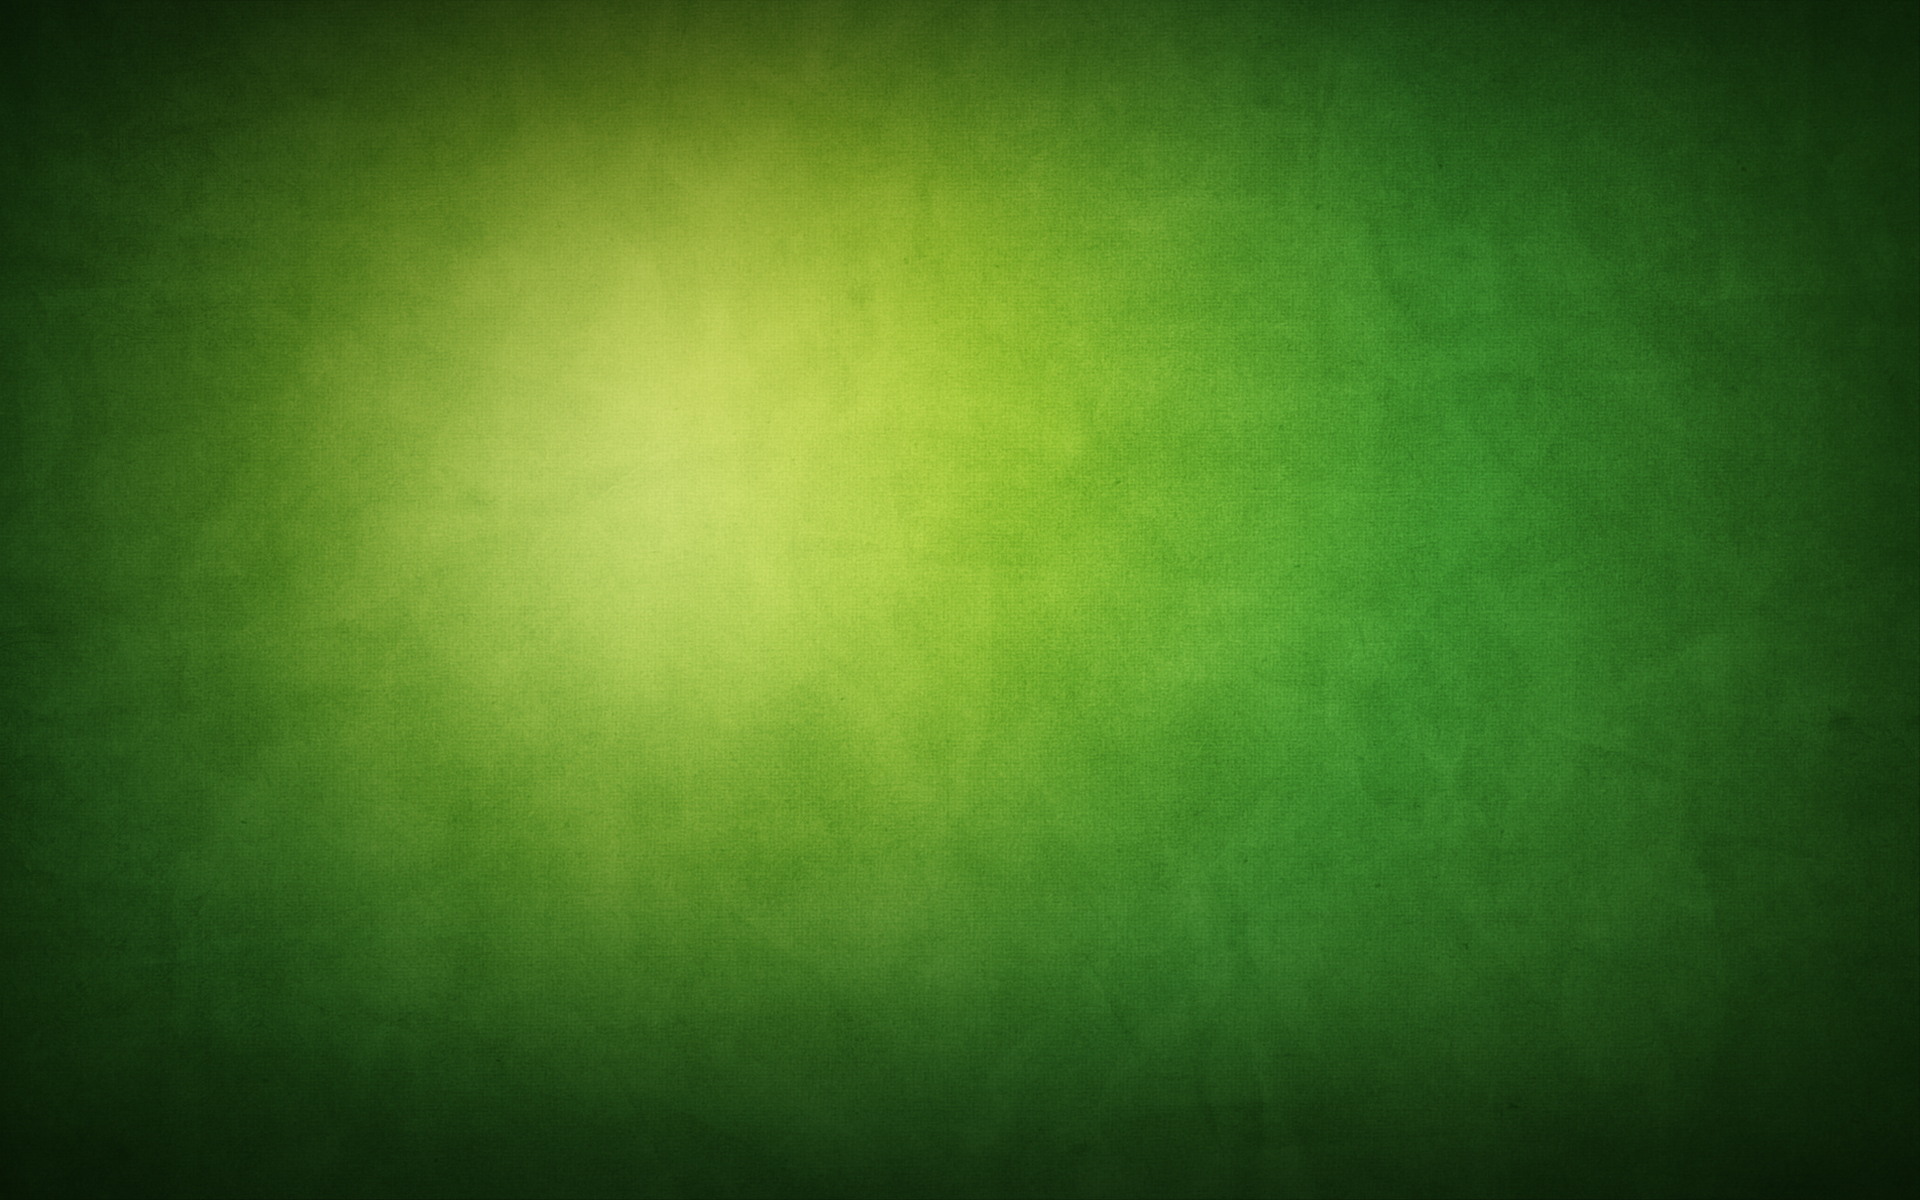 Green Background PC Computer